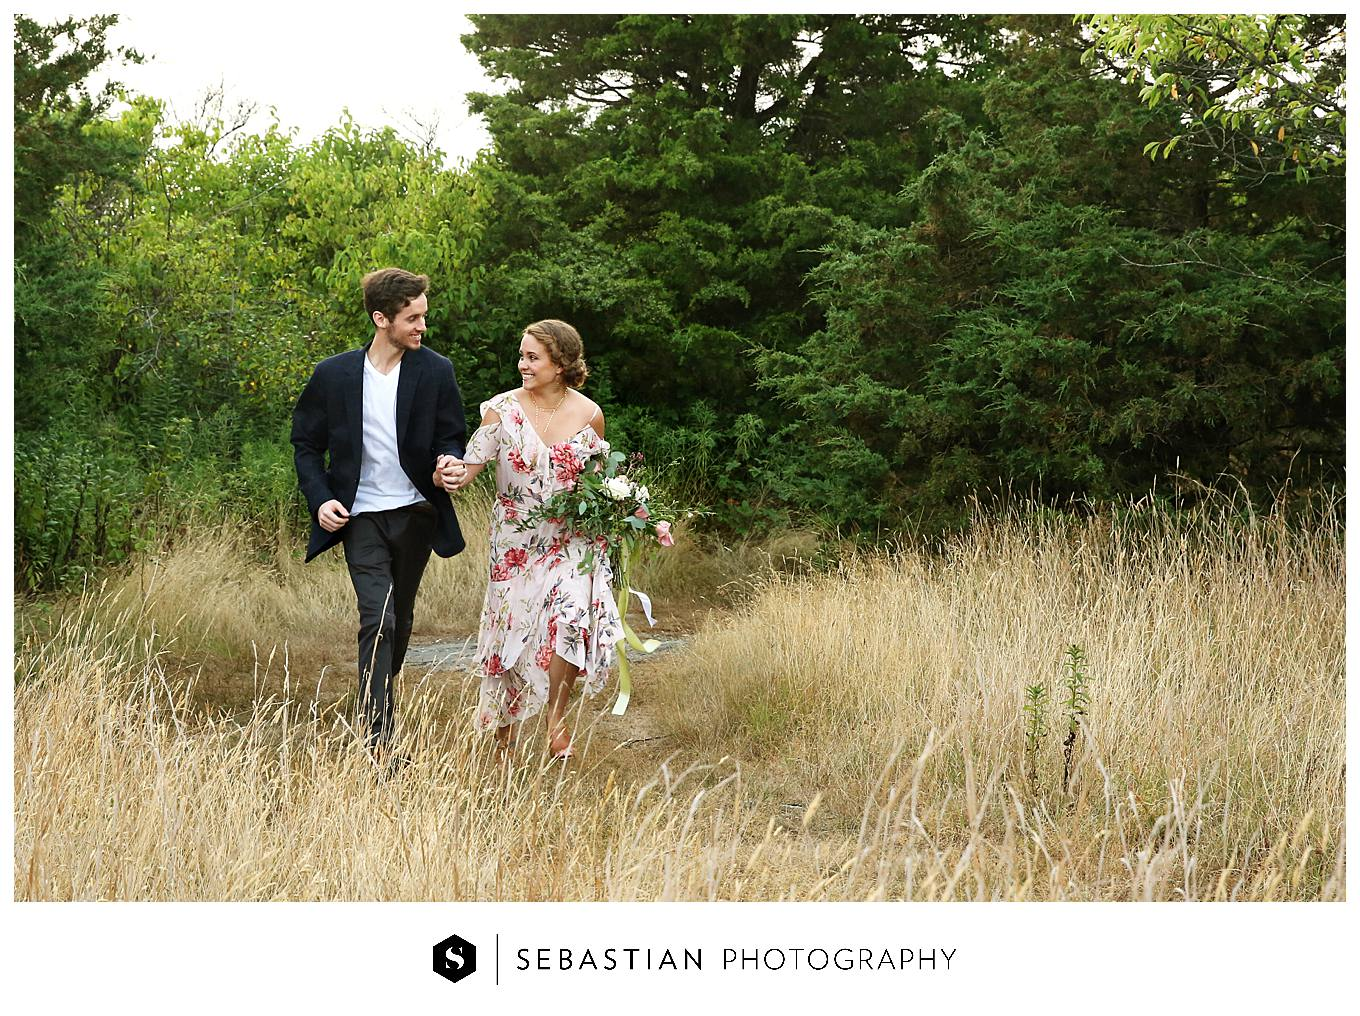 Sebastian Photography_Lake of Isle Wedding_CT Wedding Photogrpaher__1231.jpg